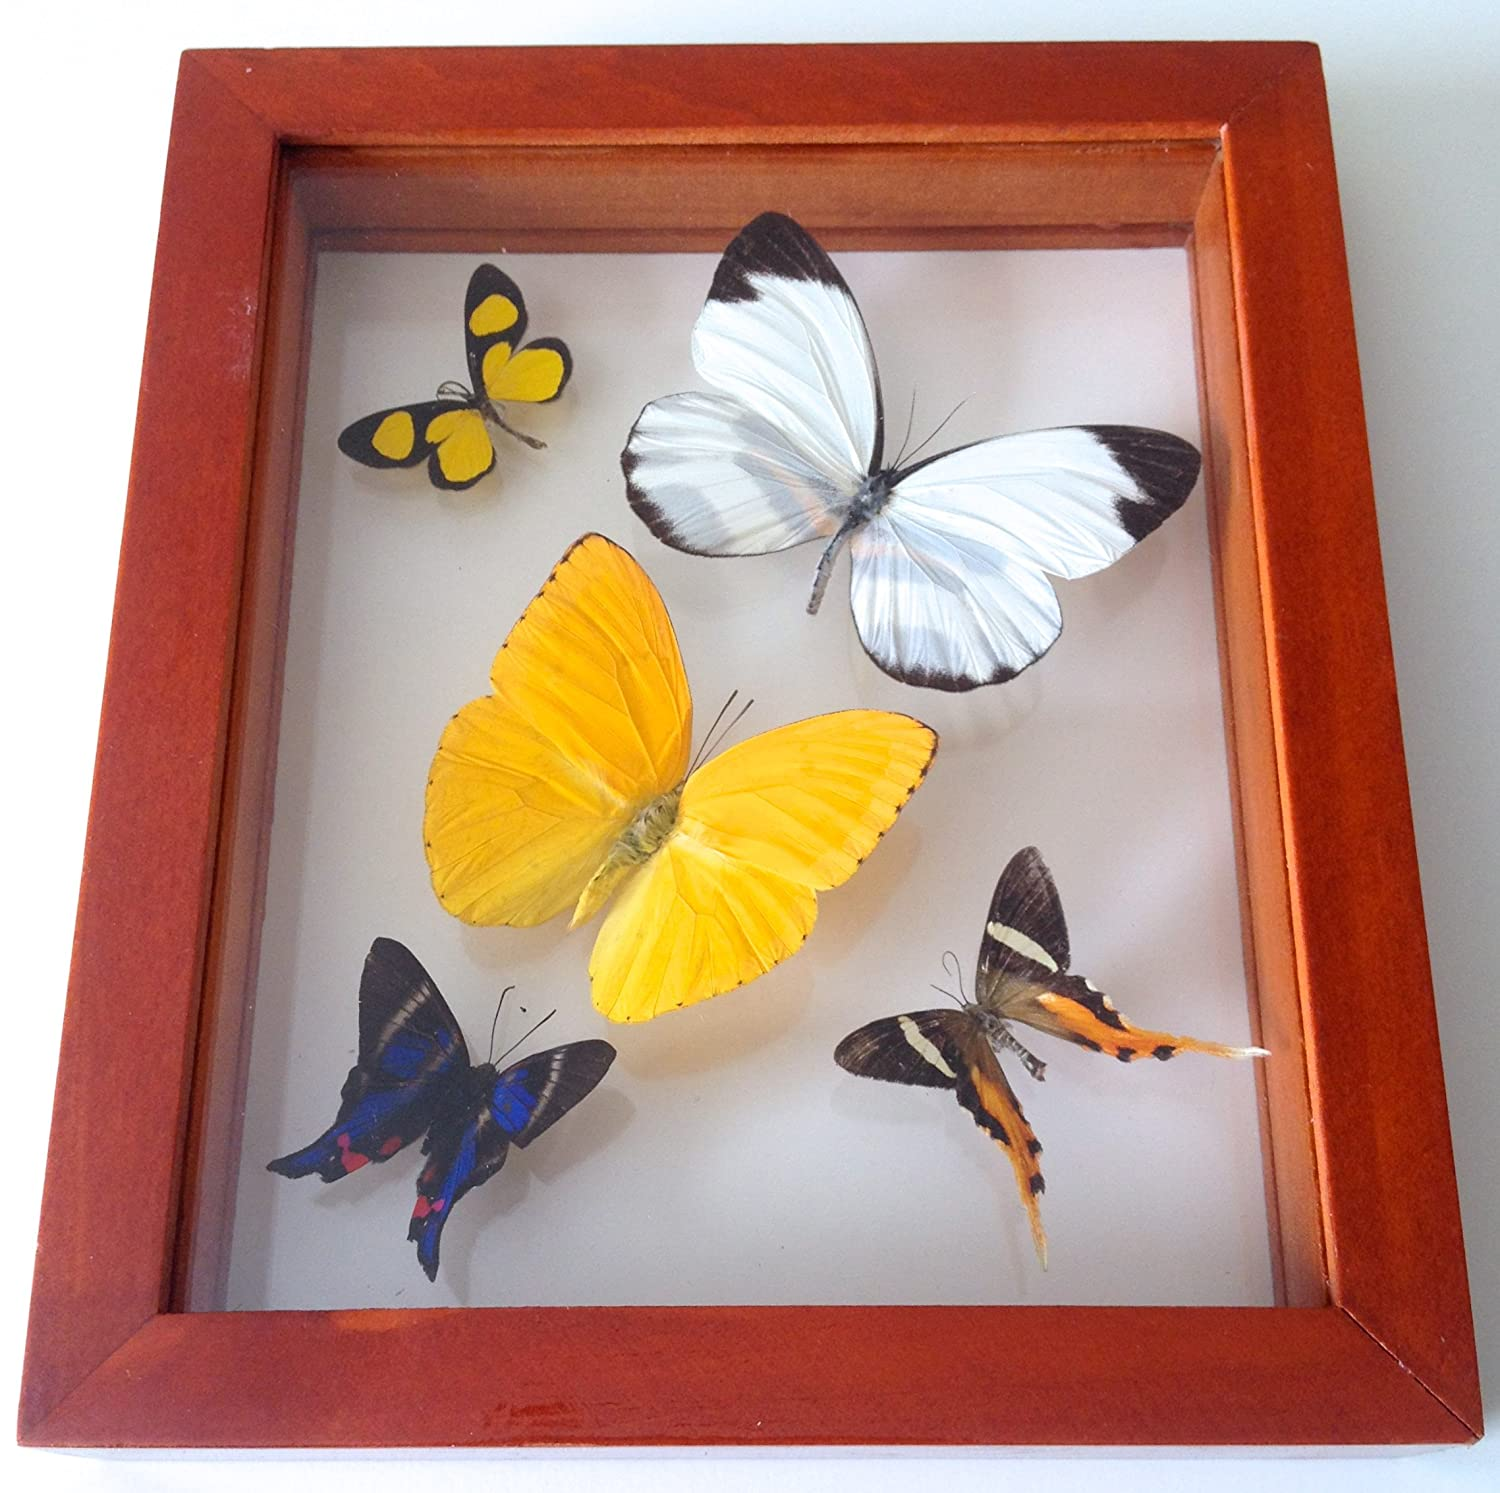 Amazon.com : 5 Real Framed Butterflies Mounted in Double Glass Sided ...